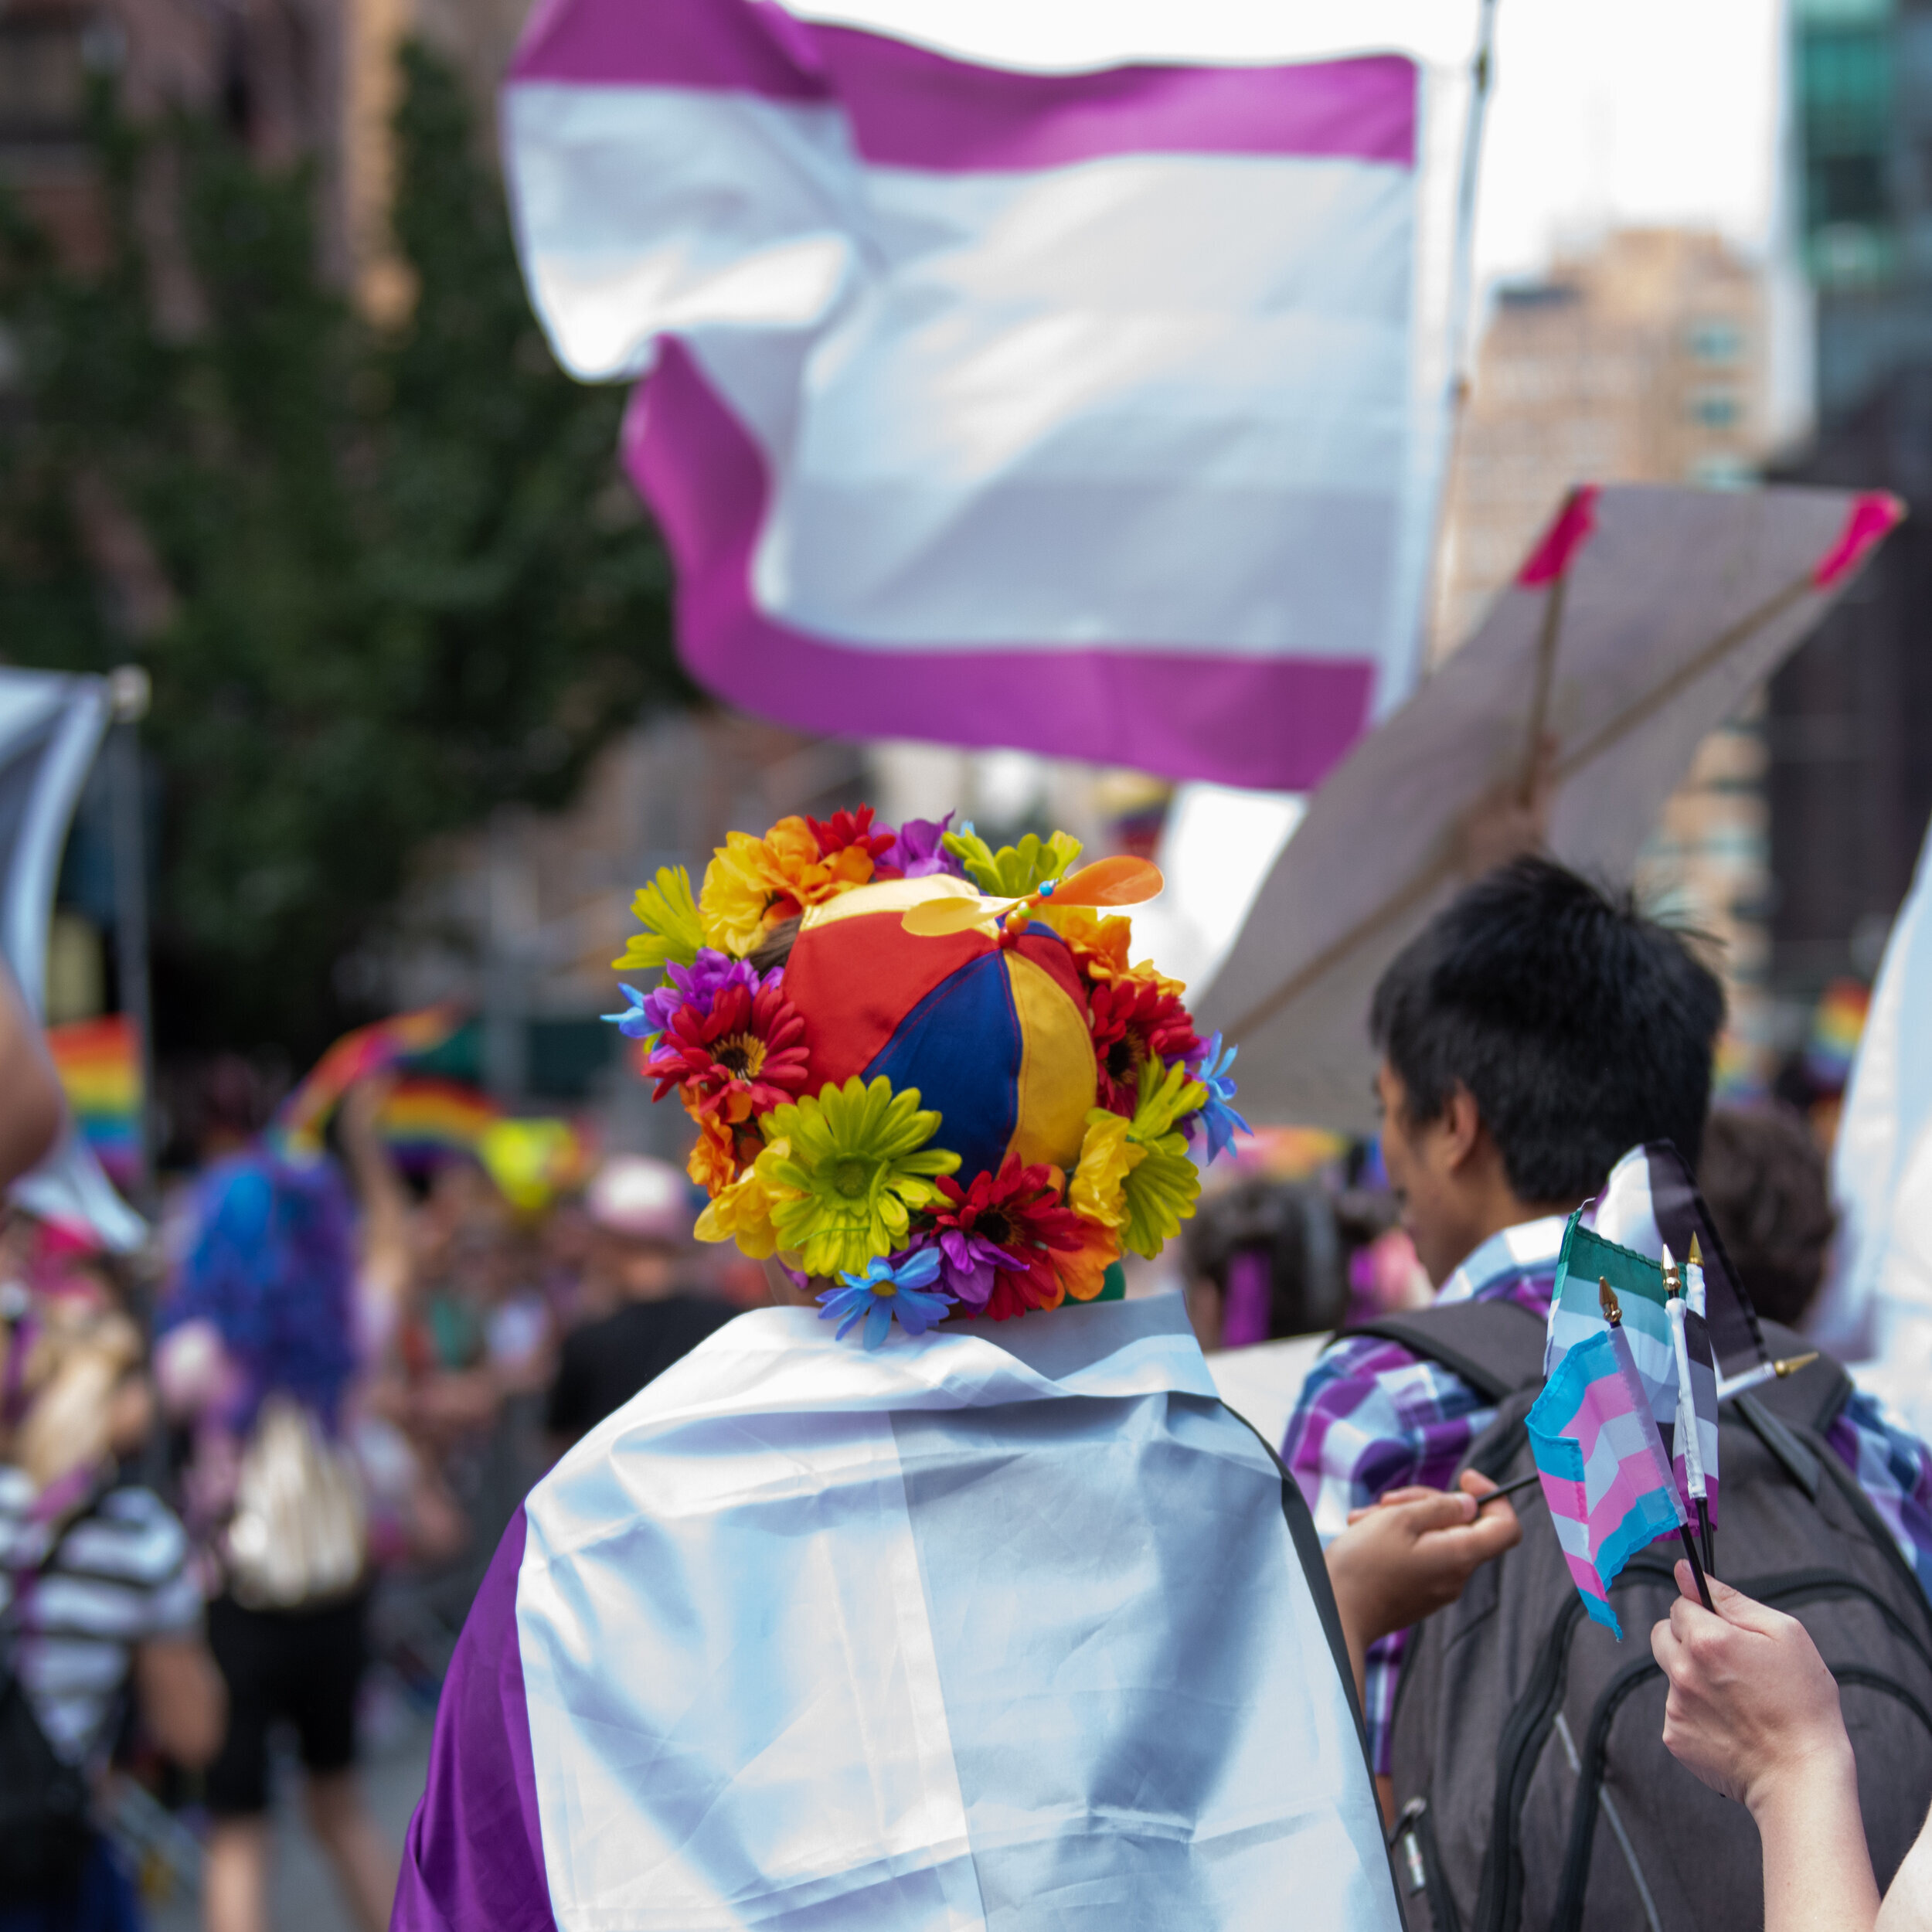 A person with an Ace flag cape and a flower crown. A blurry background shows multiple other people and a large graysexual flag.